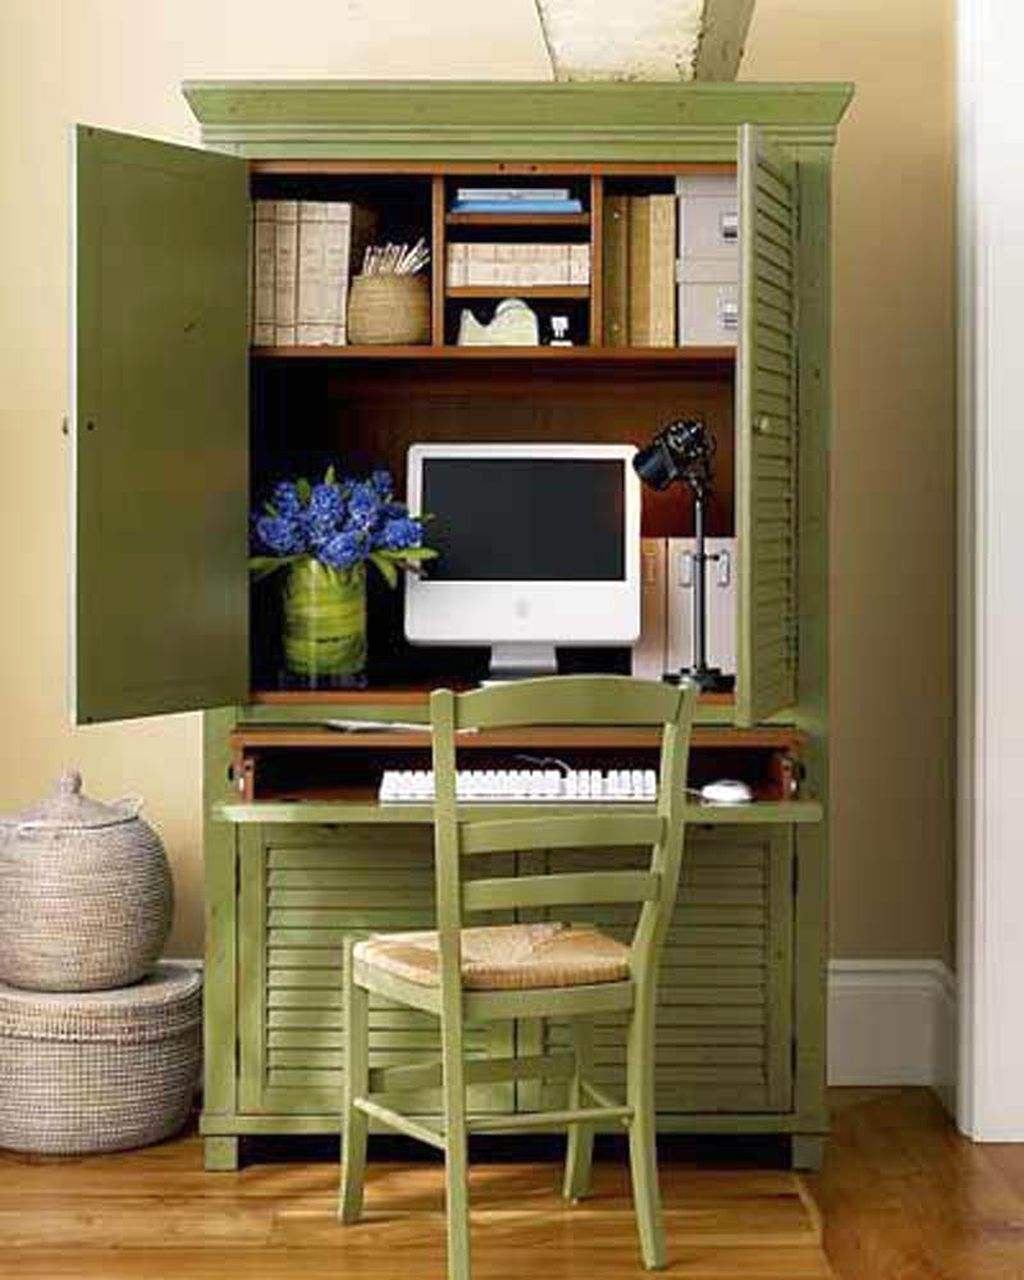 Green cupboard home office design ideas for small spaces for Small home office design layout ideas